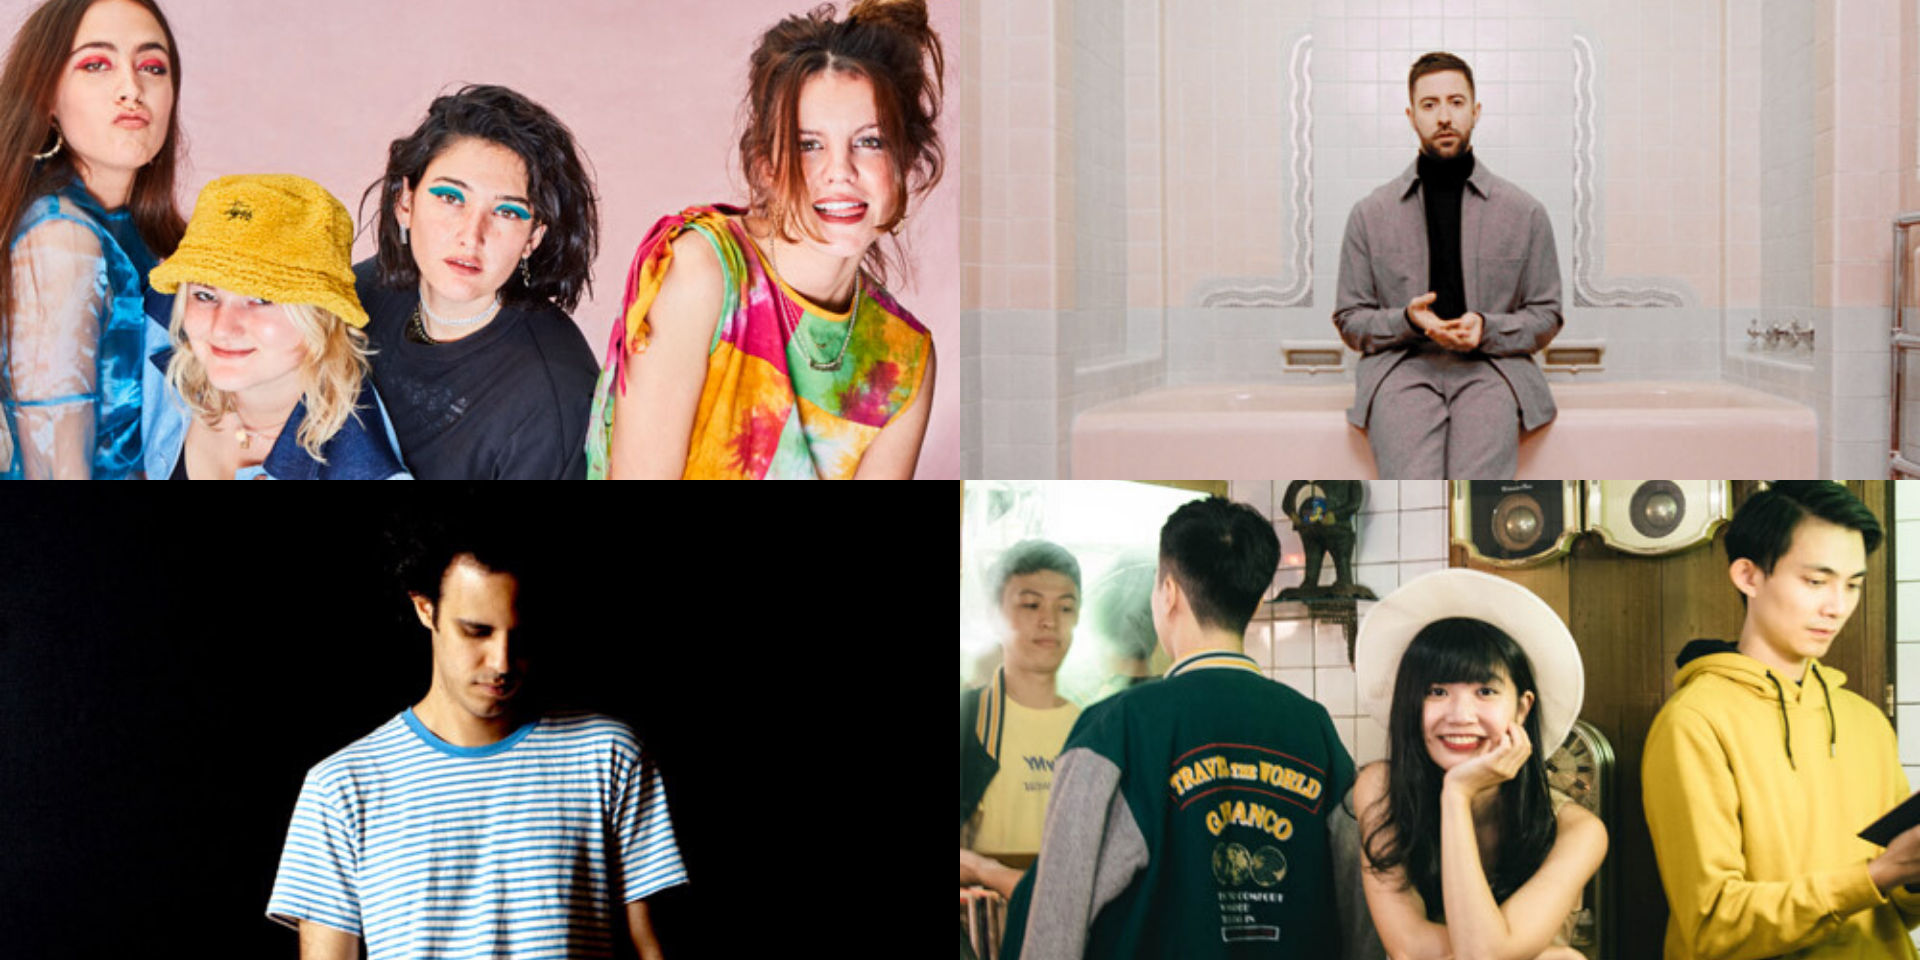 Fuji Rock Festival adds Bruno Major, Four Tet, Hinds, Elephant Gym, and more to 2020 lineup